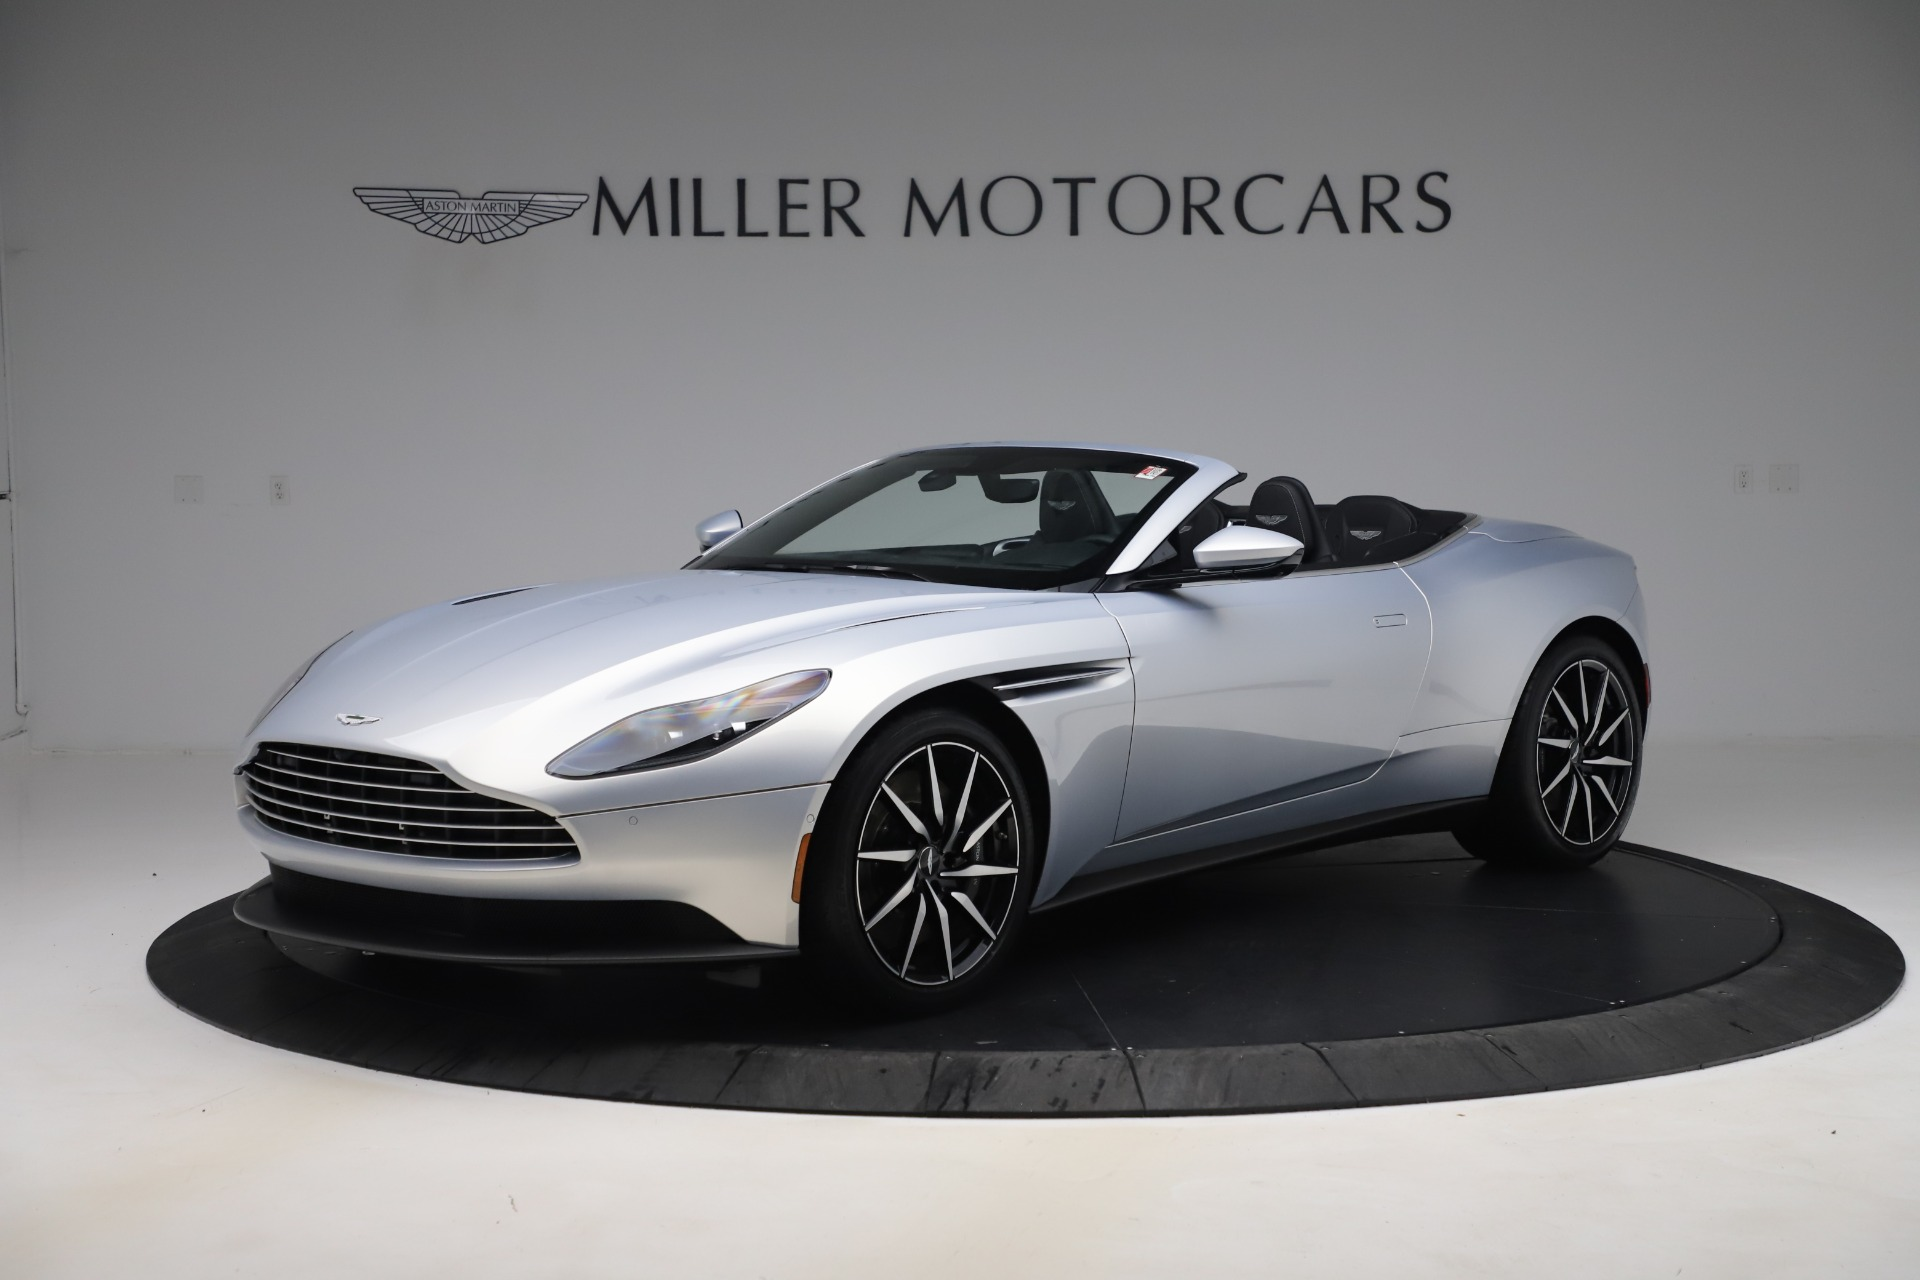 Used 2020 Aston Martin DB11 Volante Convertible for sale $240,411 at Maserati of Westport in Westport CT 06880 1